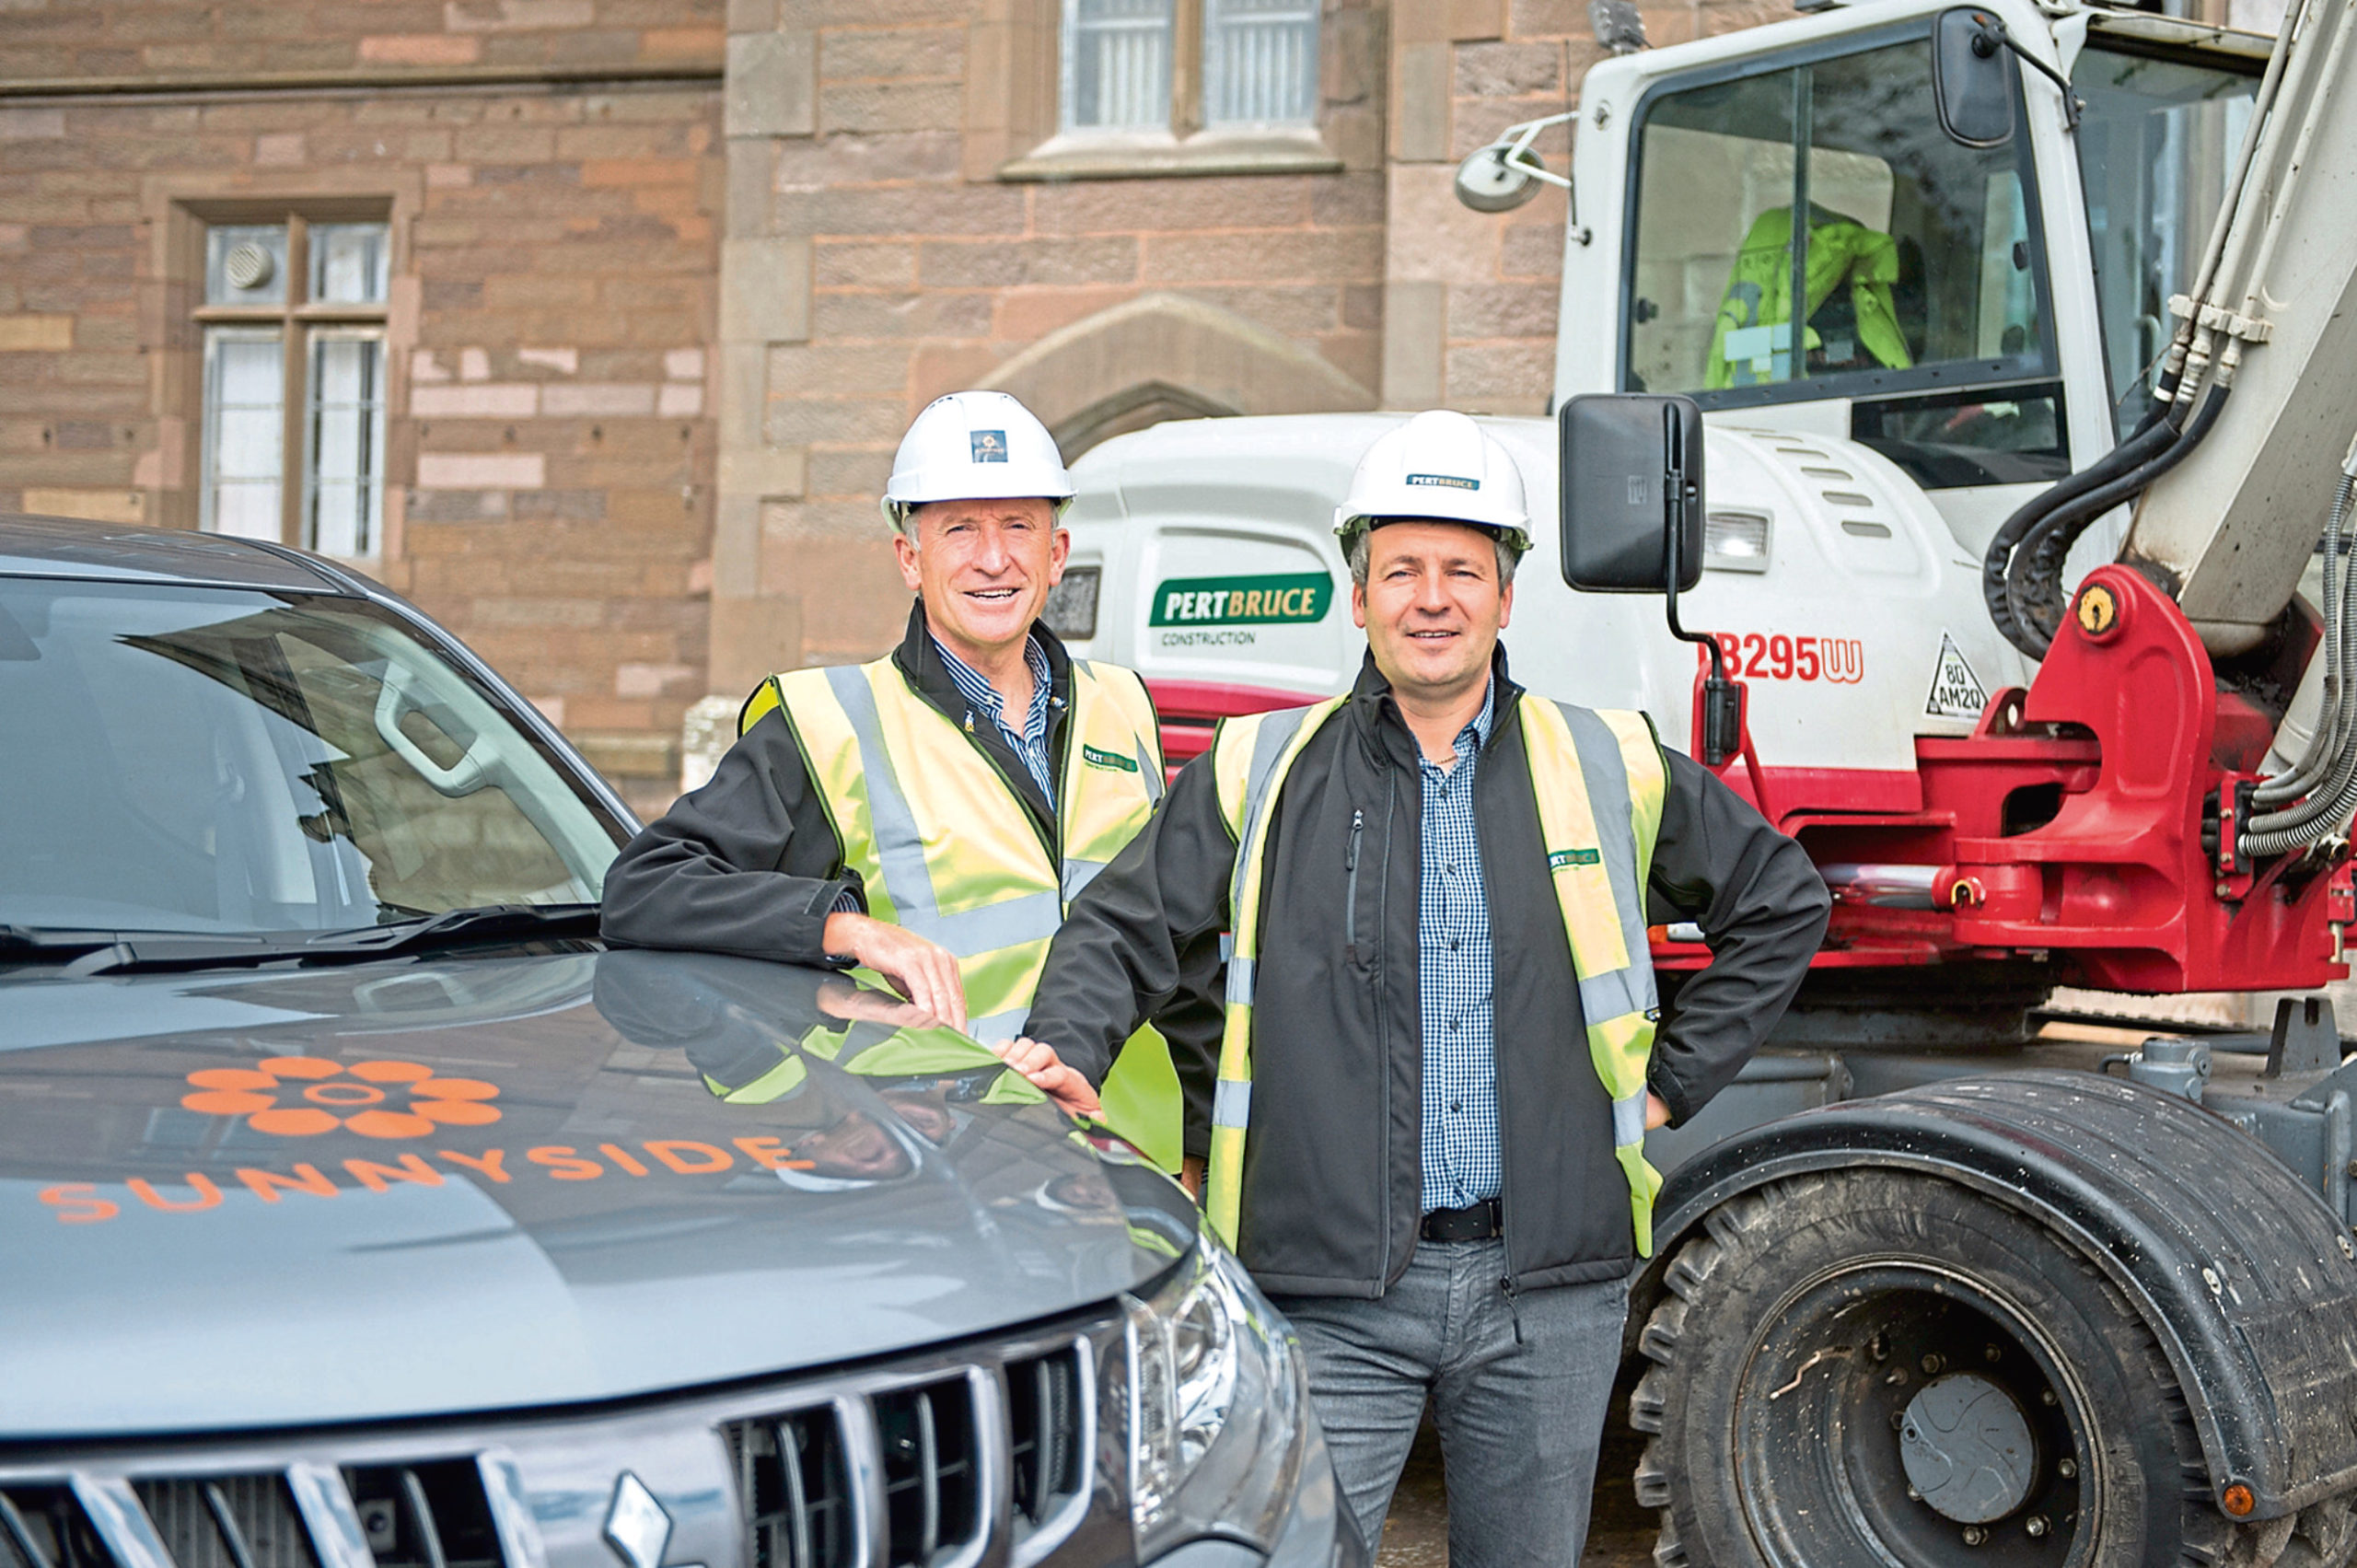 Pert Bruce Construction has begun on delivering more than 500 homes on the site of the former Royal Hospital and surrounding estate at Sunnyside, Picture shows,l to r, Jamie Pert and Craig Bruce,21 August 2019